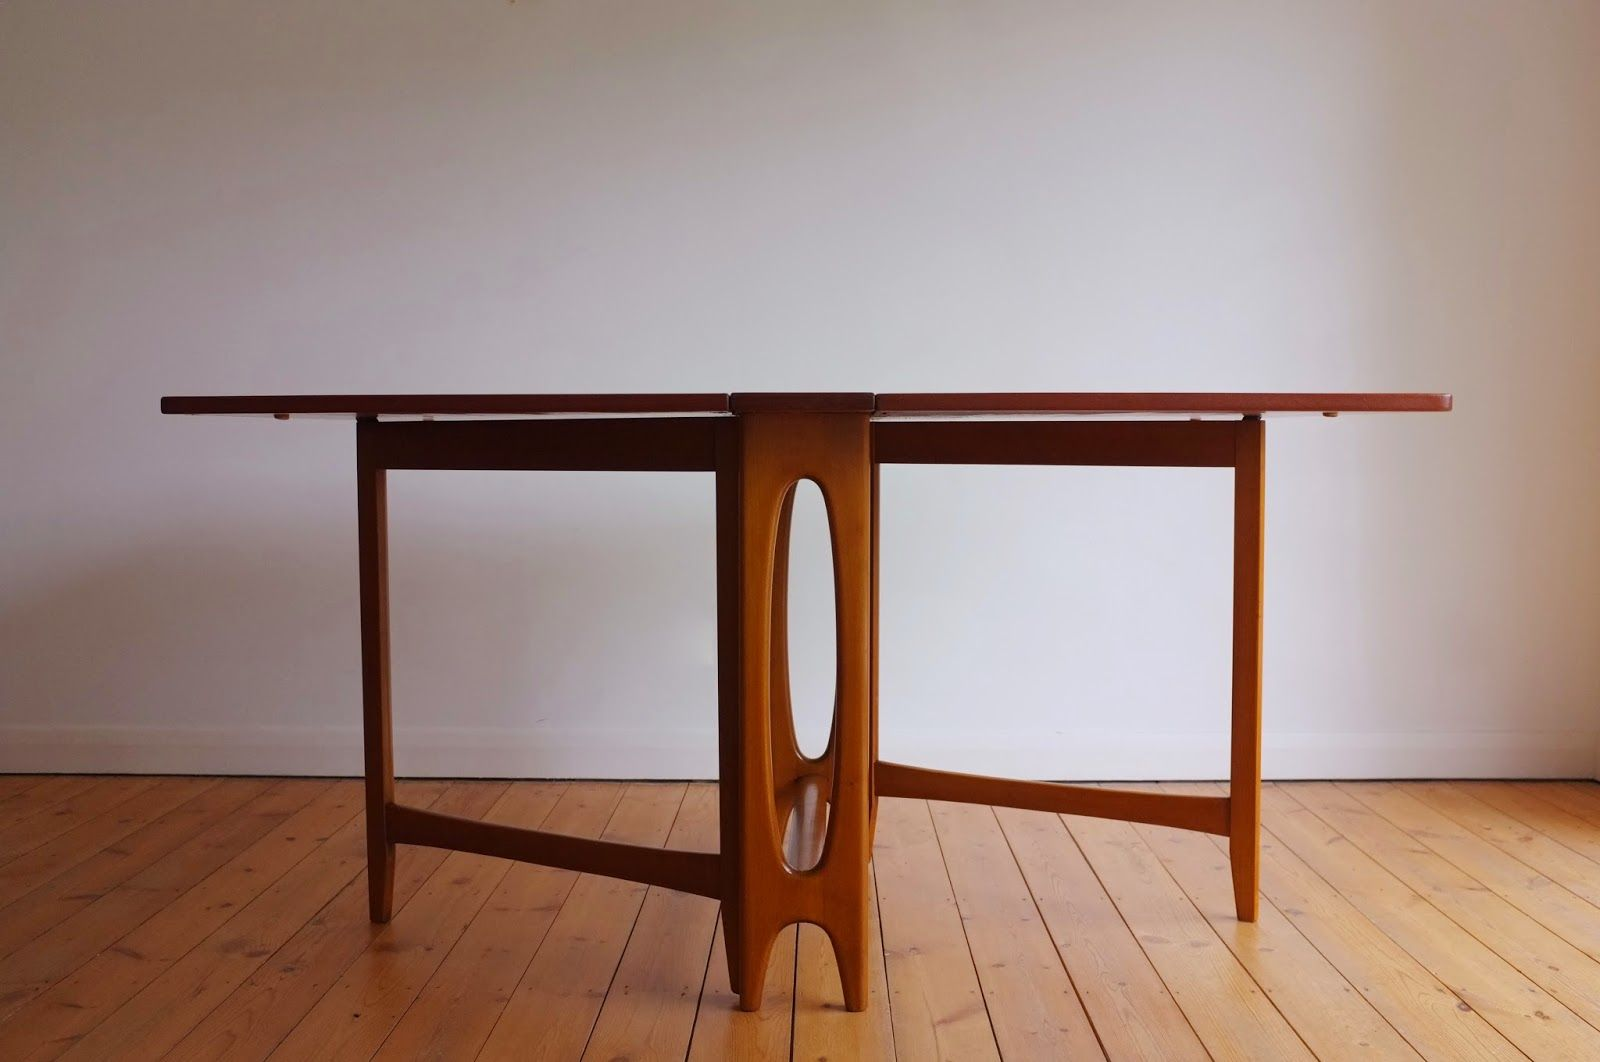 Drop Leaf Dining Table Designed By Bendt Winge For Kleppes Mobelfabrikk,  Norway Teak Table Top, Beech Legs, Brass Hinges